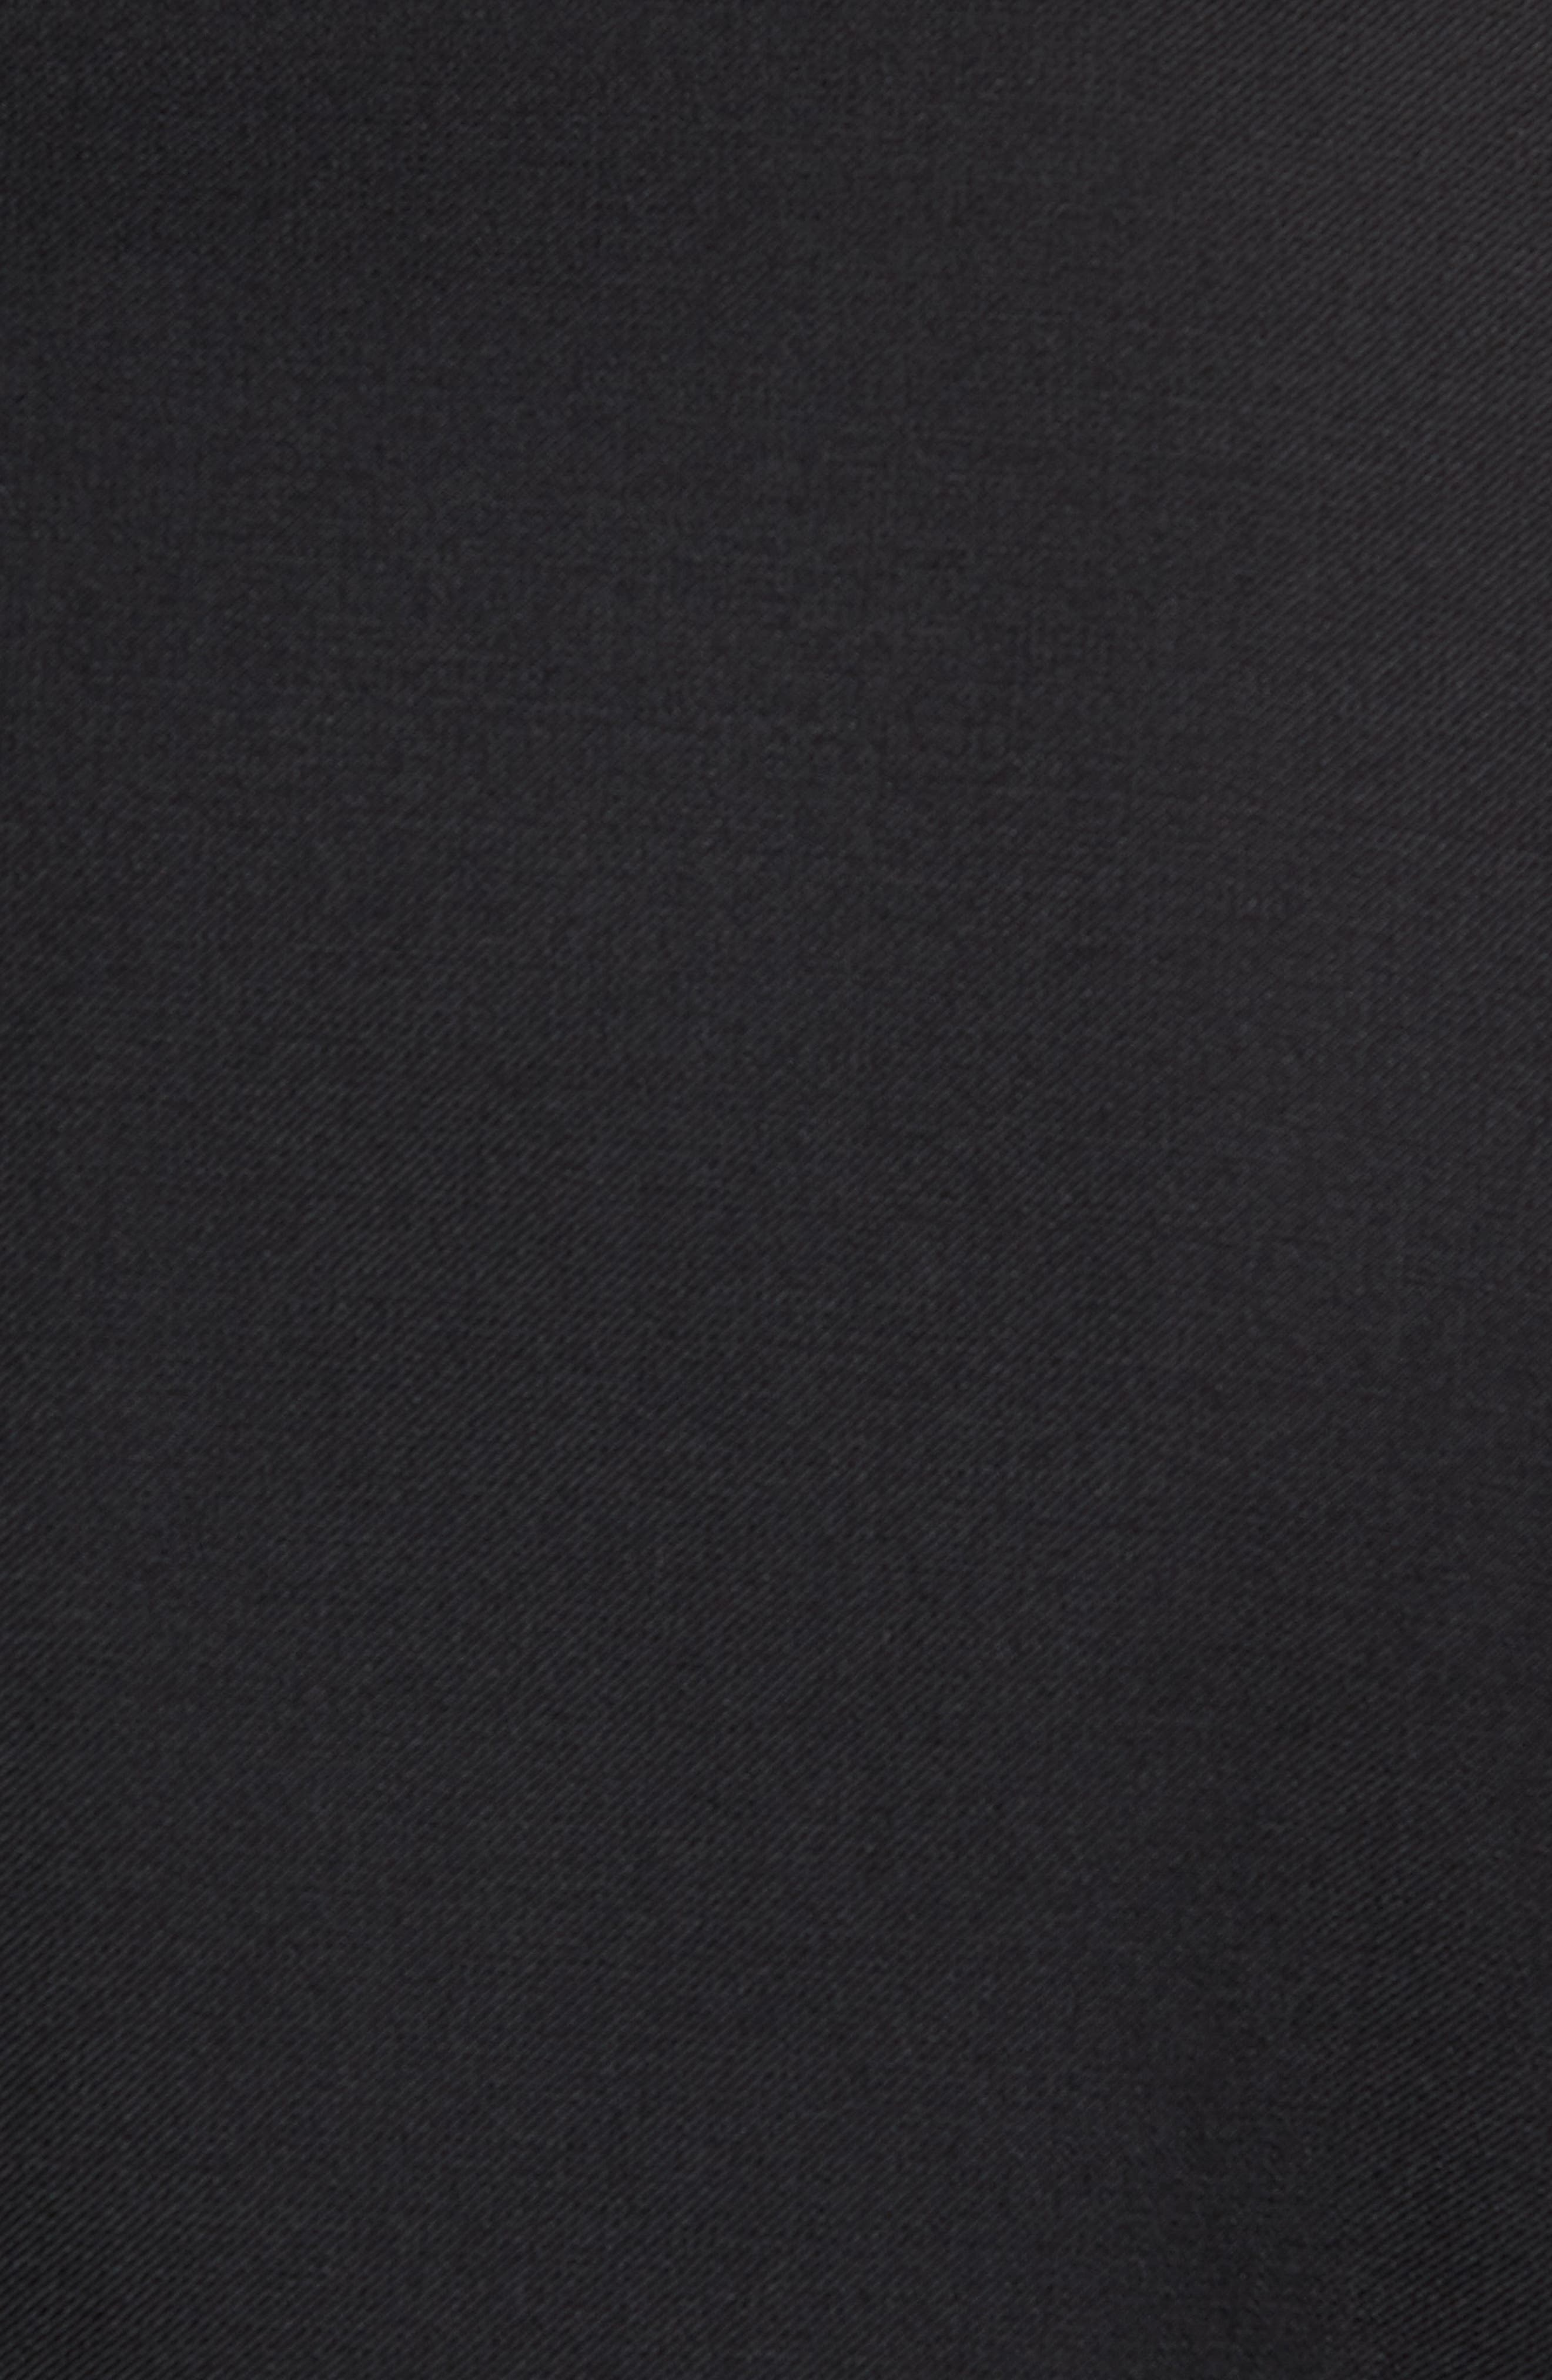 Trim Fit Wool Blend Tuxedo,                             Alternate thumbnail 7, color,                             BLACK